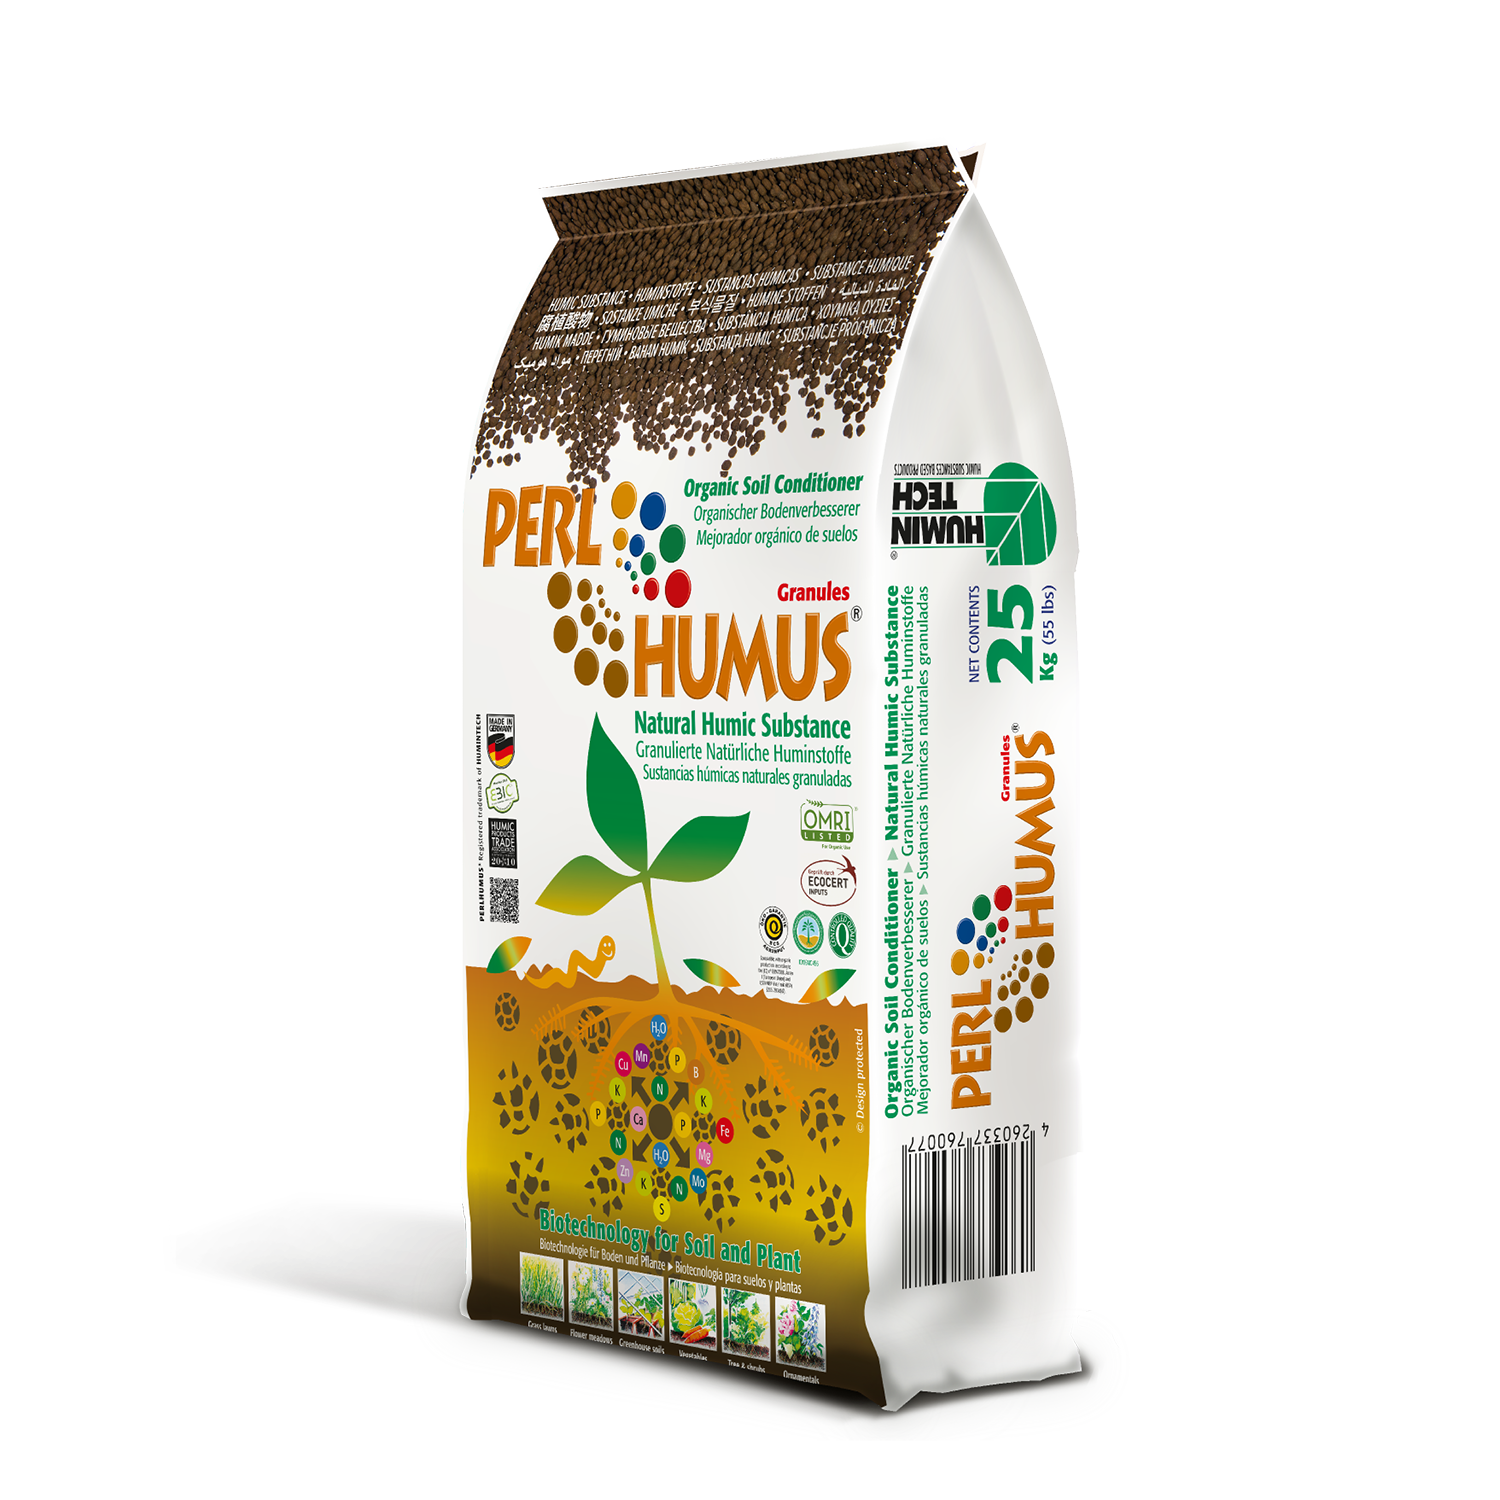 PERLHUMUS® Granules granulated high quality natural humic acid soil conditioner bag